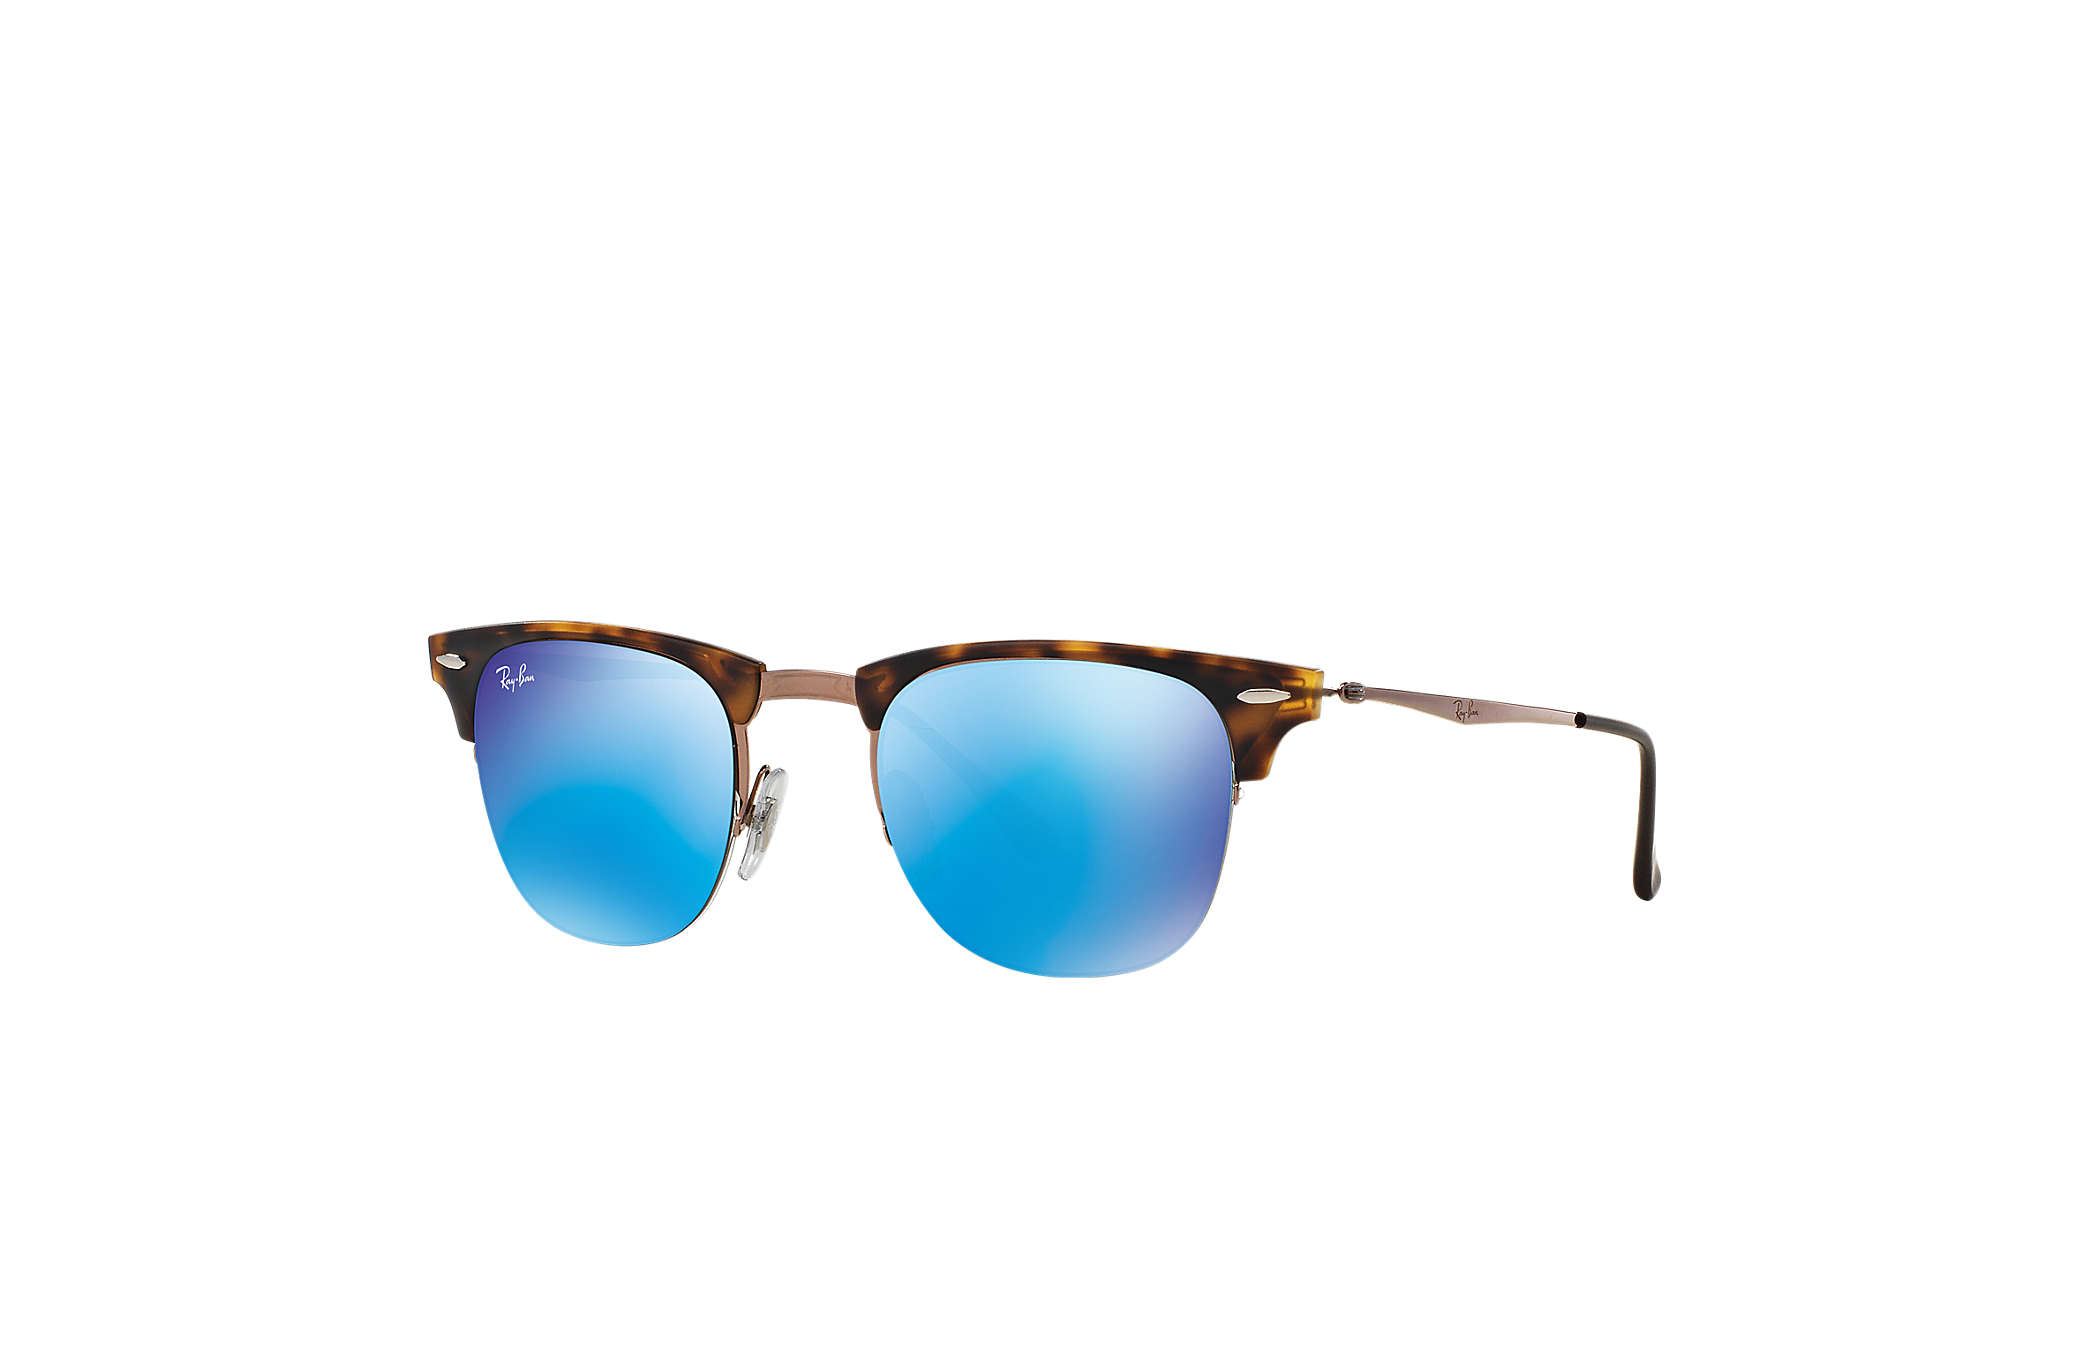 bd33e05d5e Ray-Ban Clubmaster Light Ray RB8056 Tortoise - LightRay Titanium ...